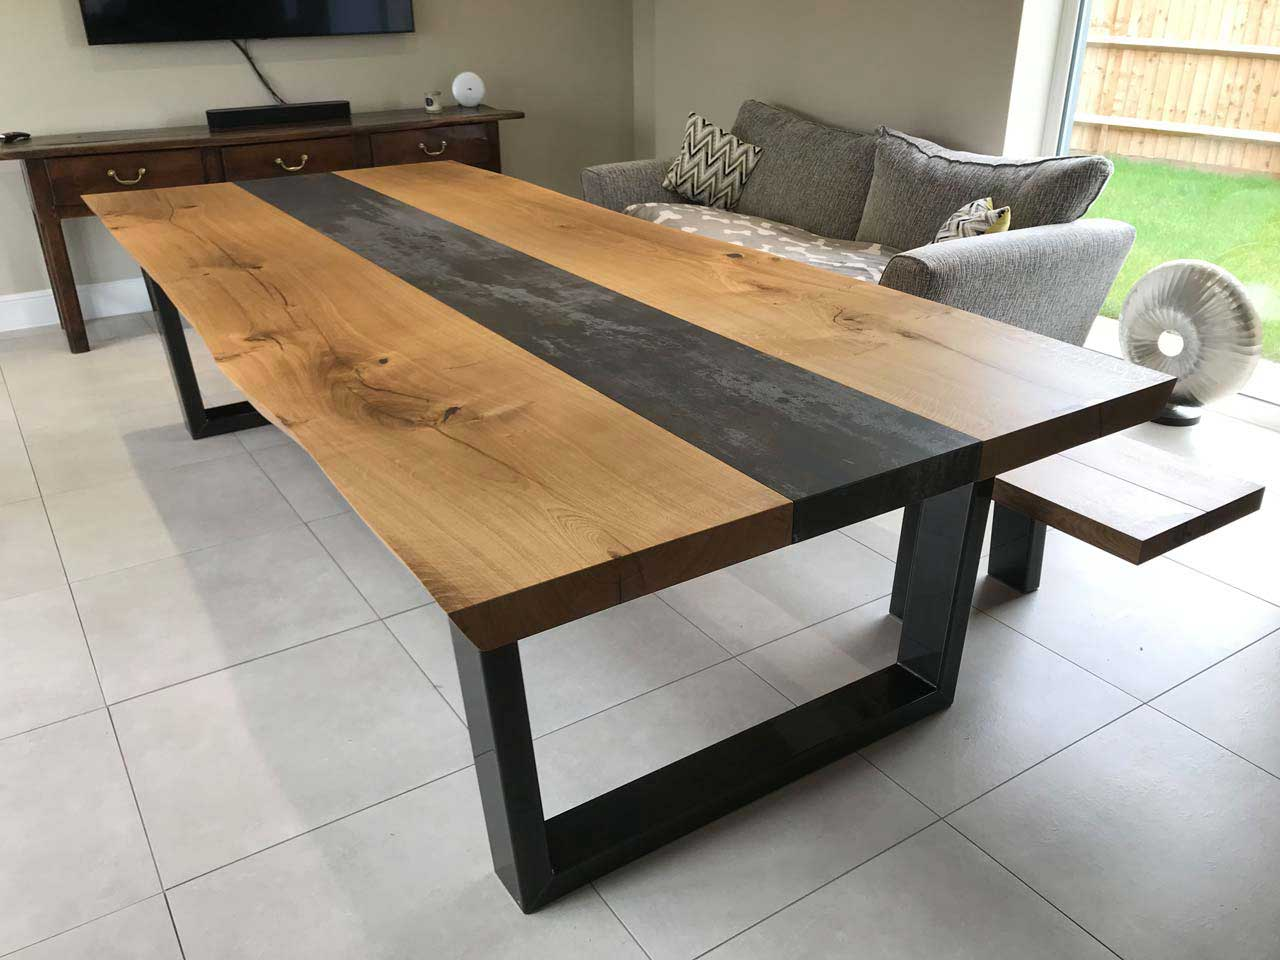 bespoke-dekton-dining-table-Abacus-Tables